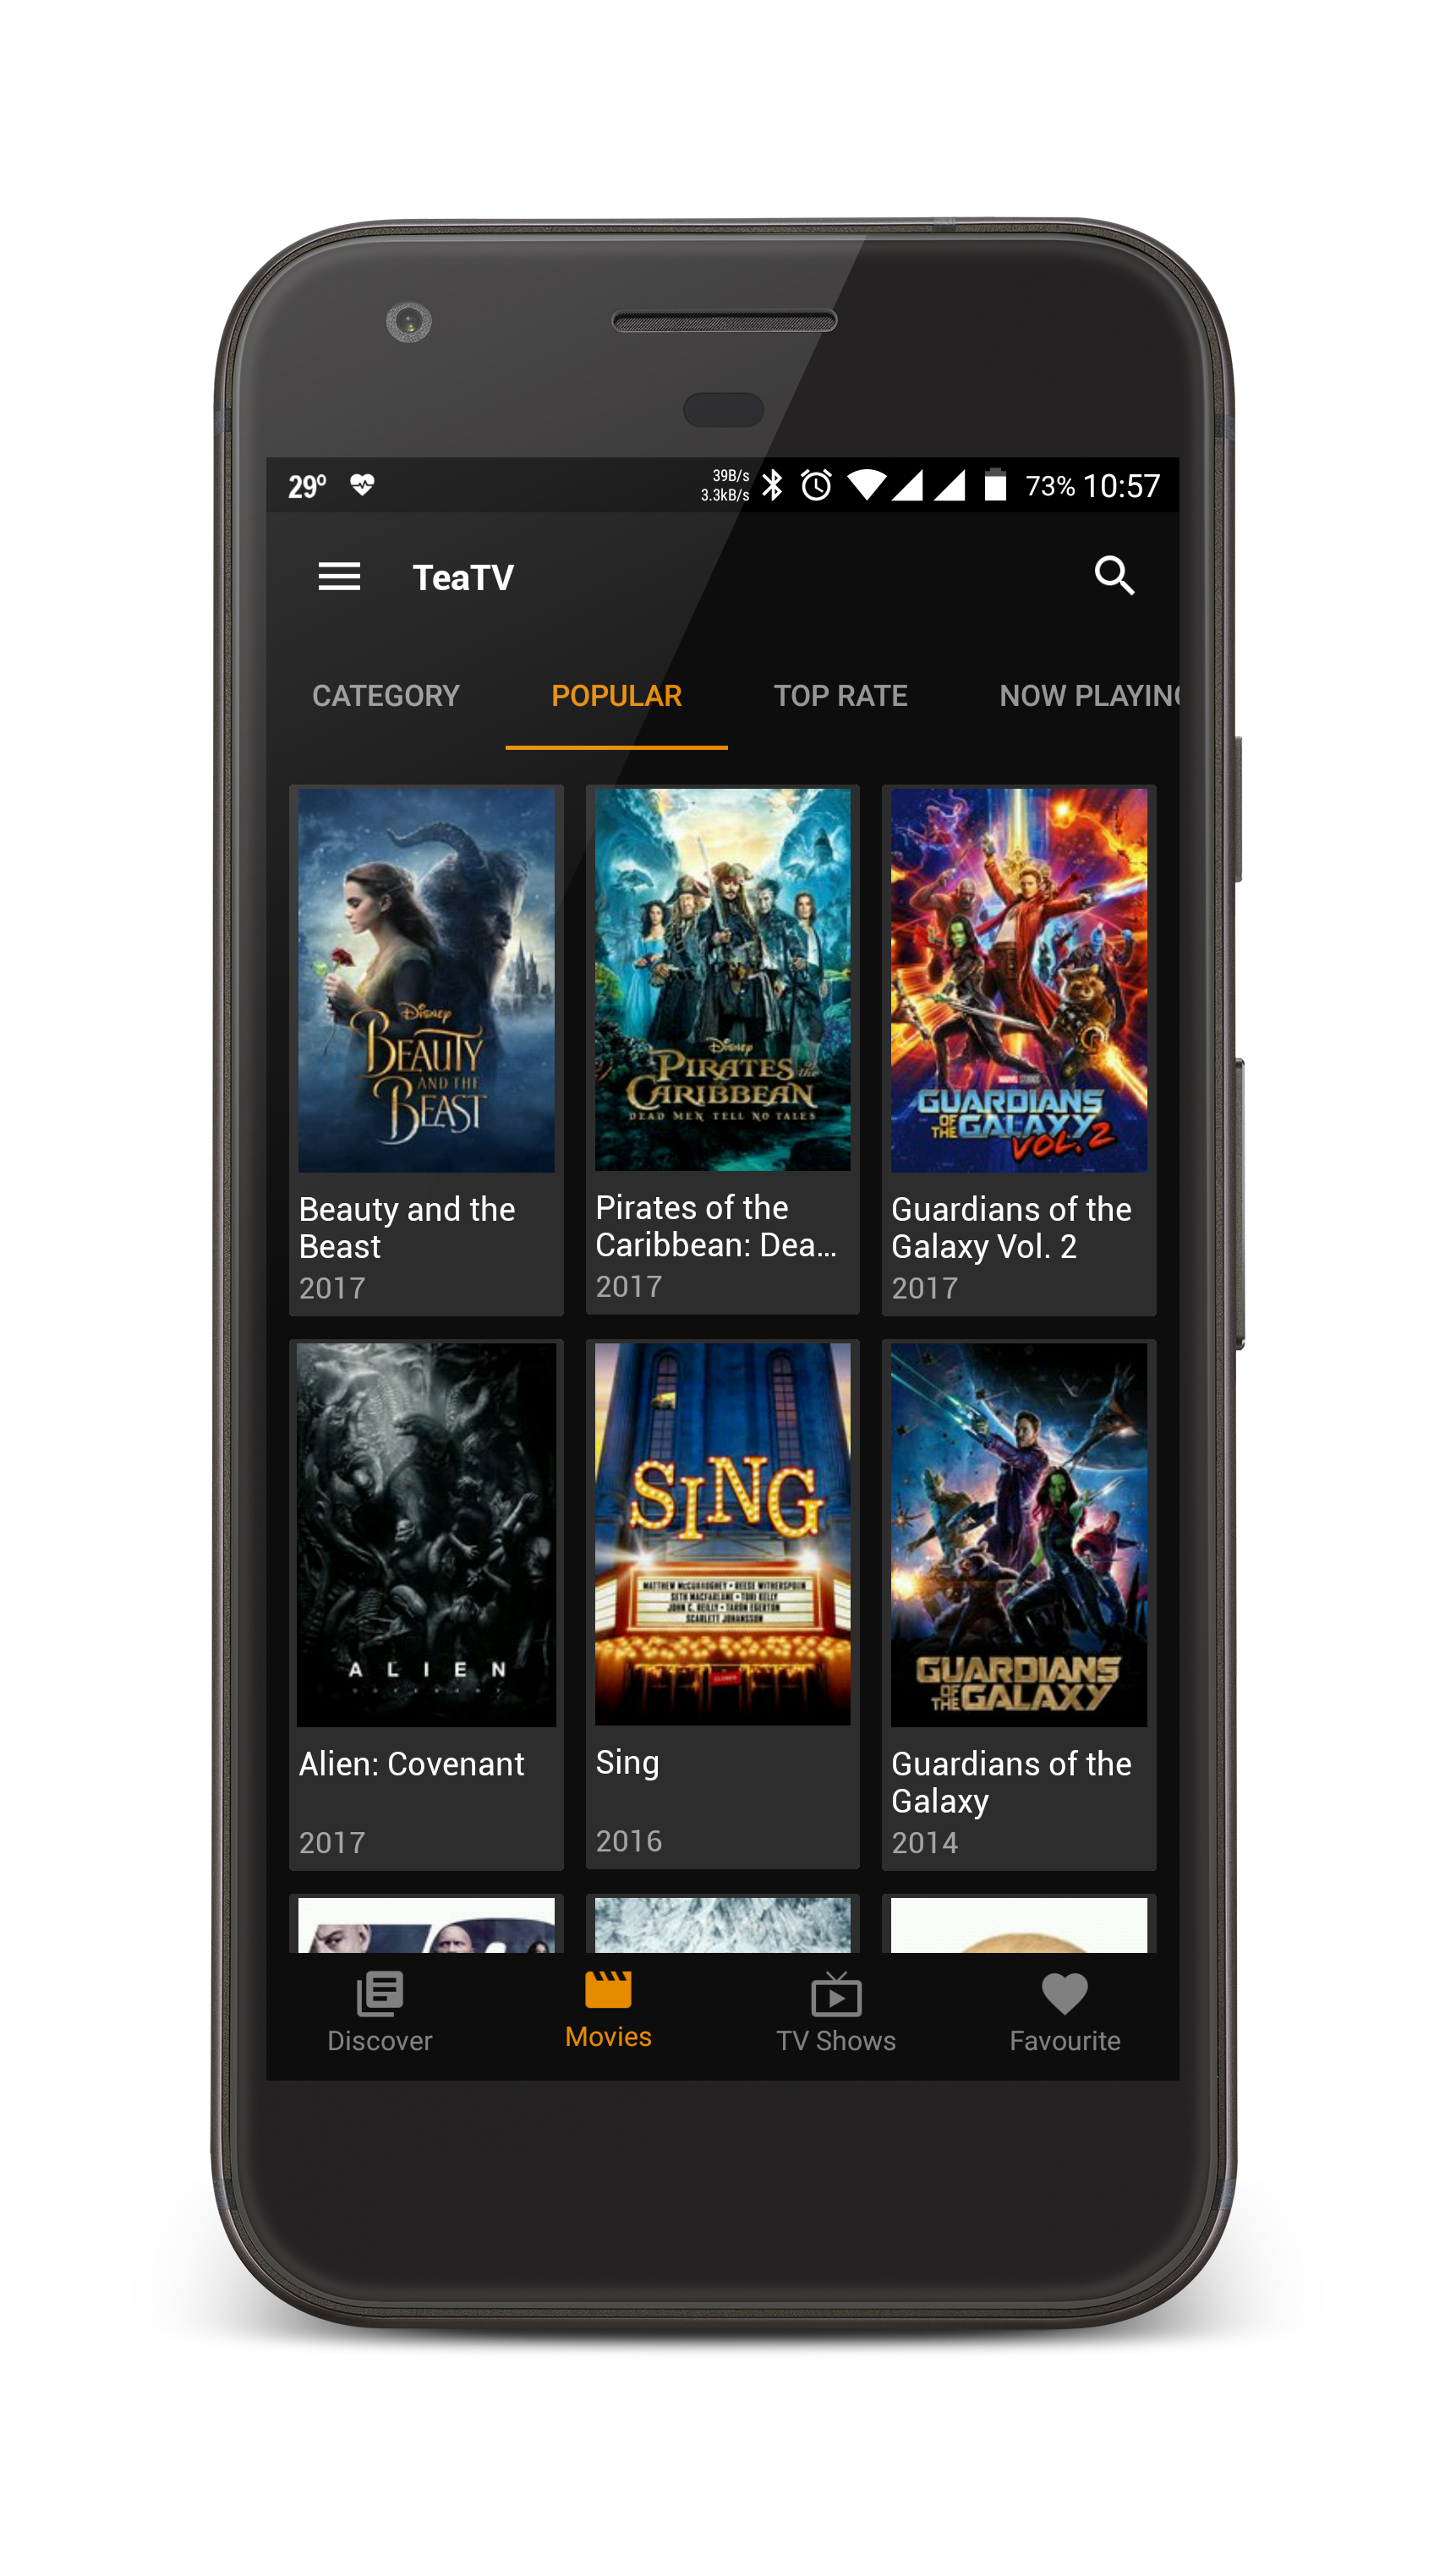 Teatv Best Free 1080p Hd Movies Tv Show App For Mobile Pc Tv App Hd Movies Free Online Tv Channels